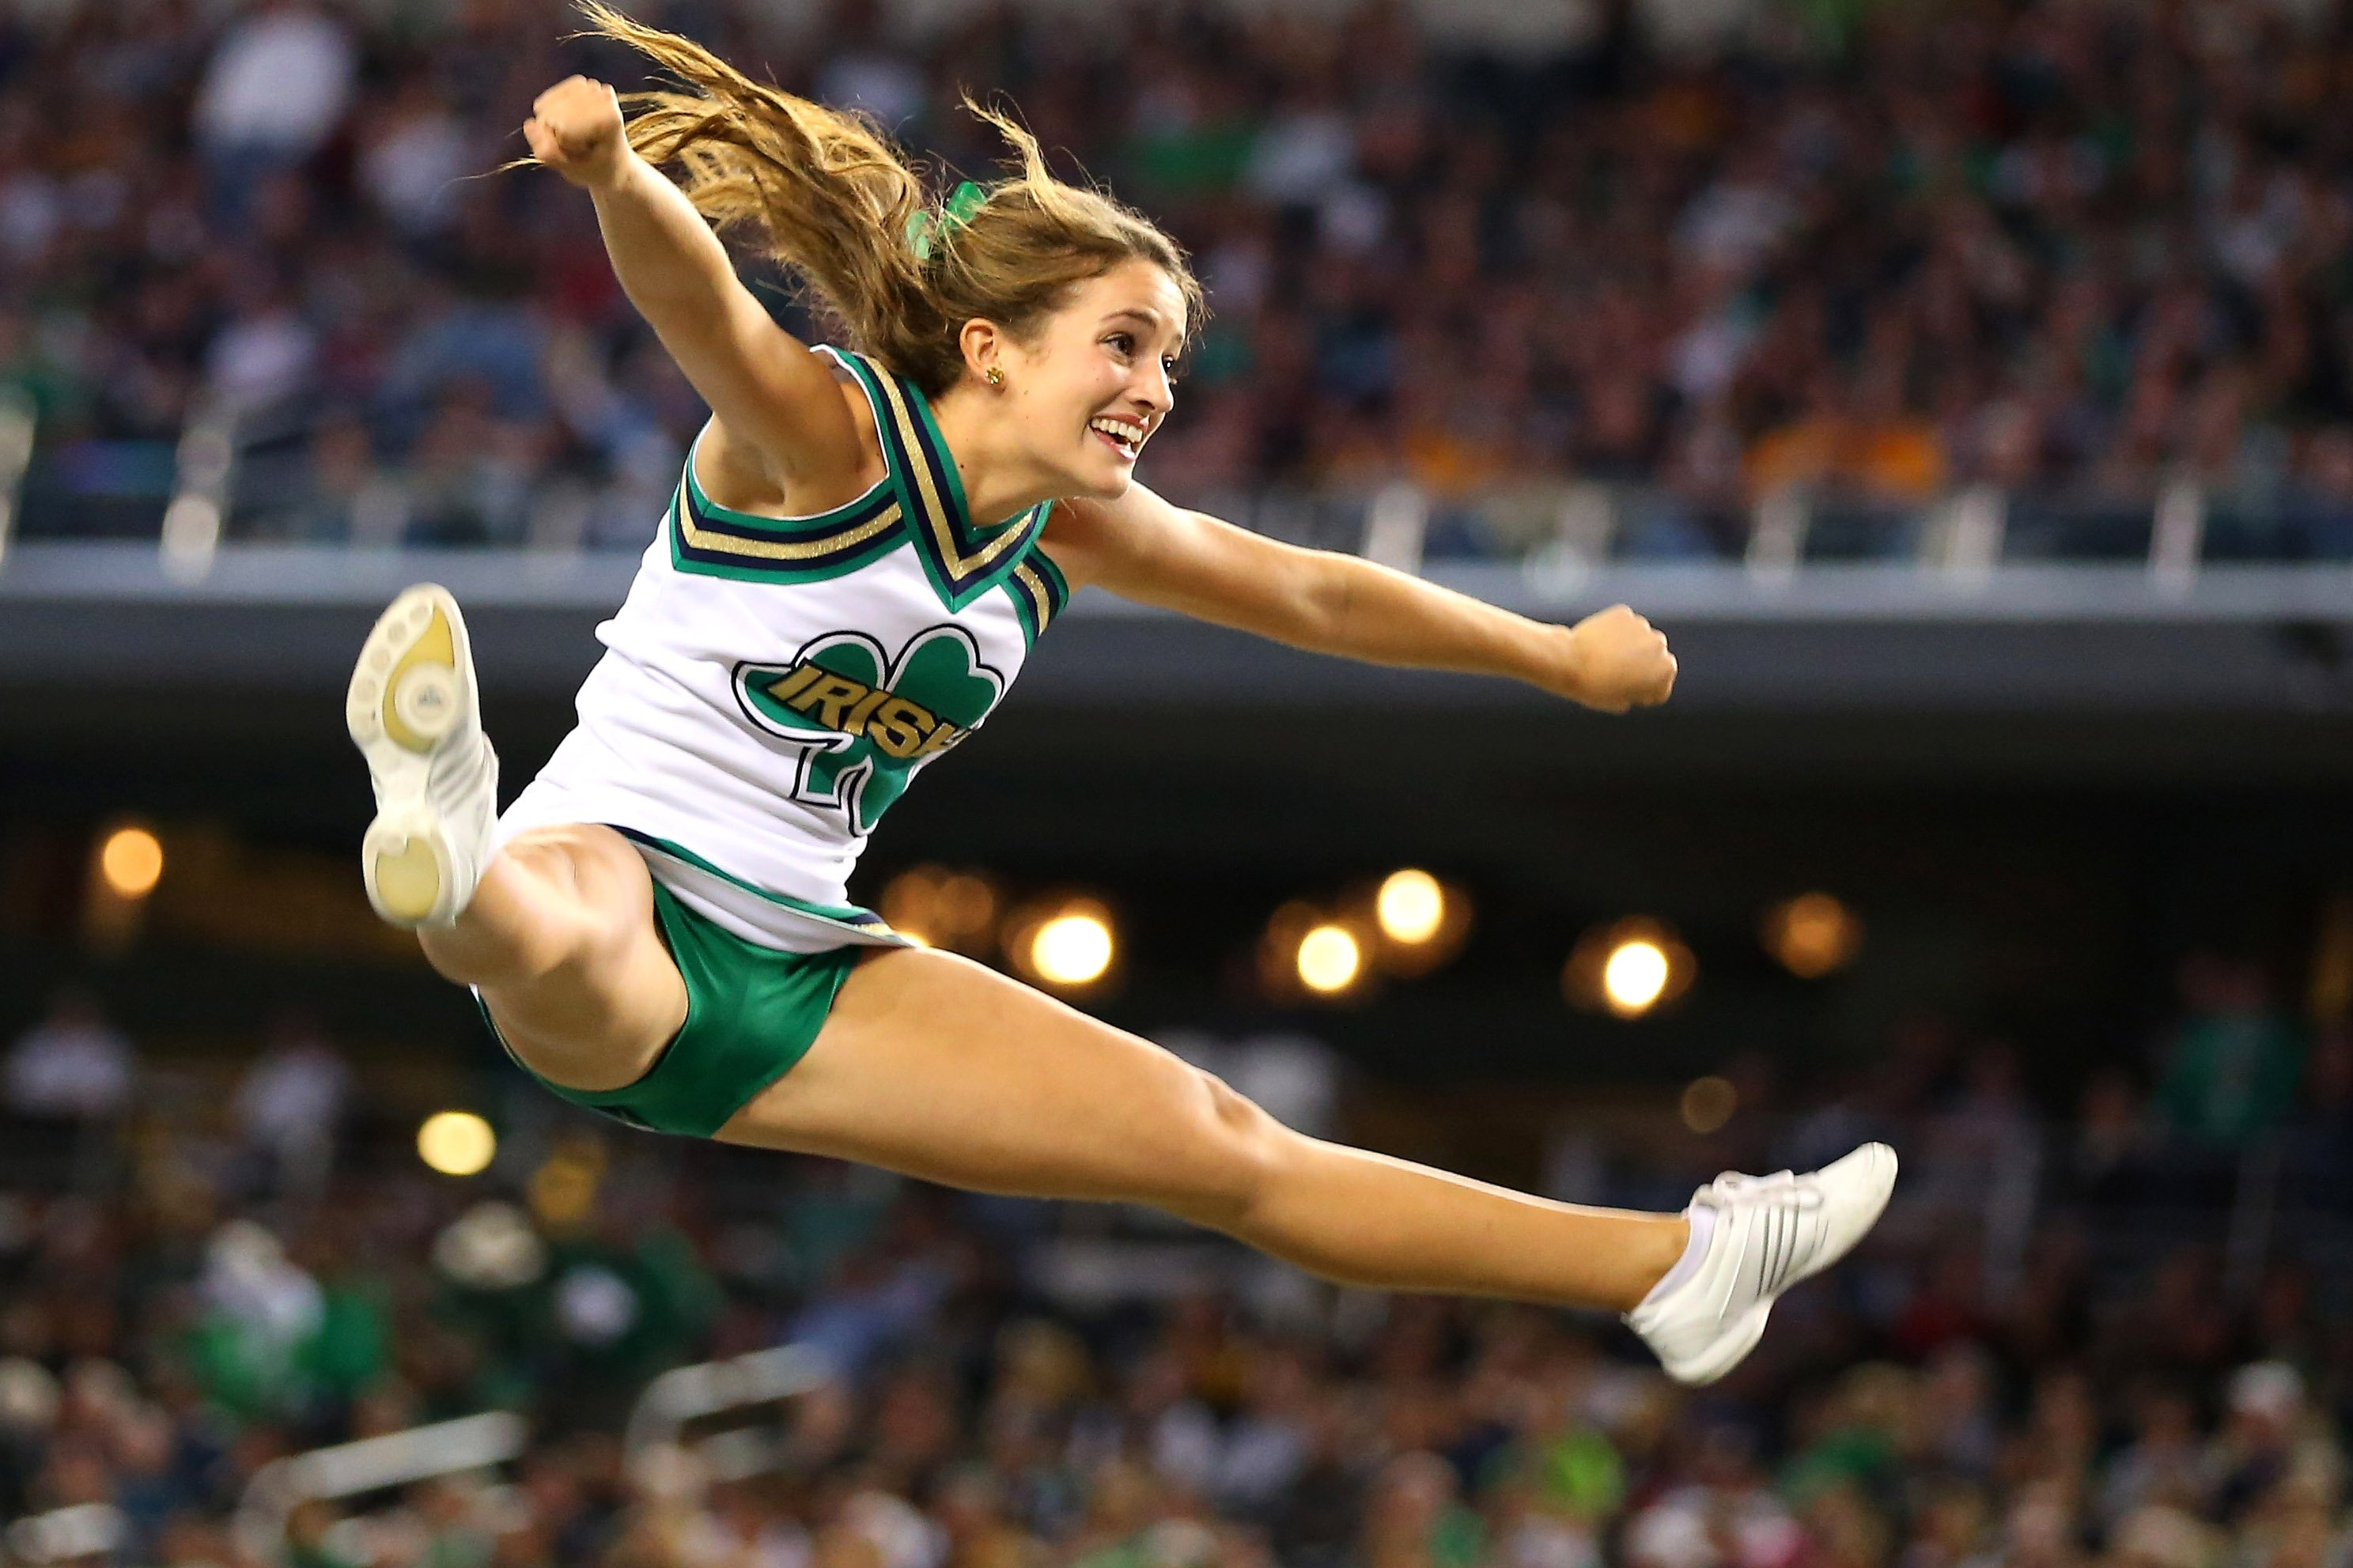 NOTRE DAME Fighting Irish college football cheerleader wallpaper 2975x1983